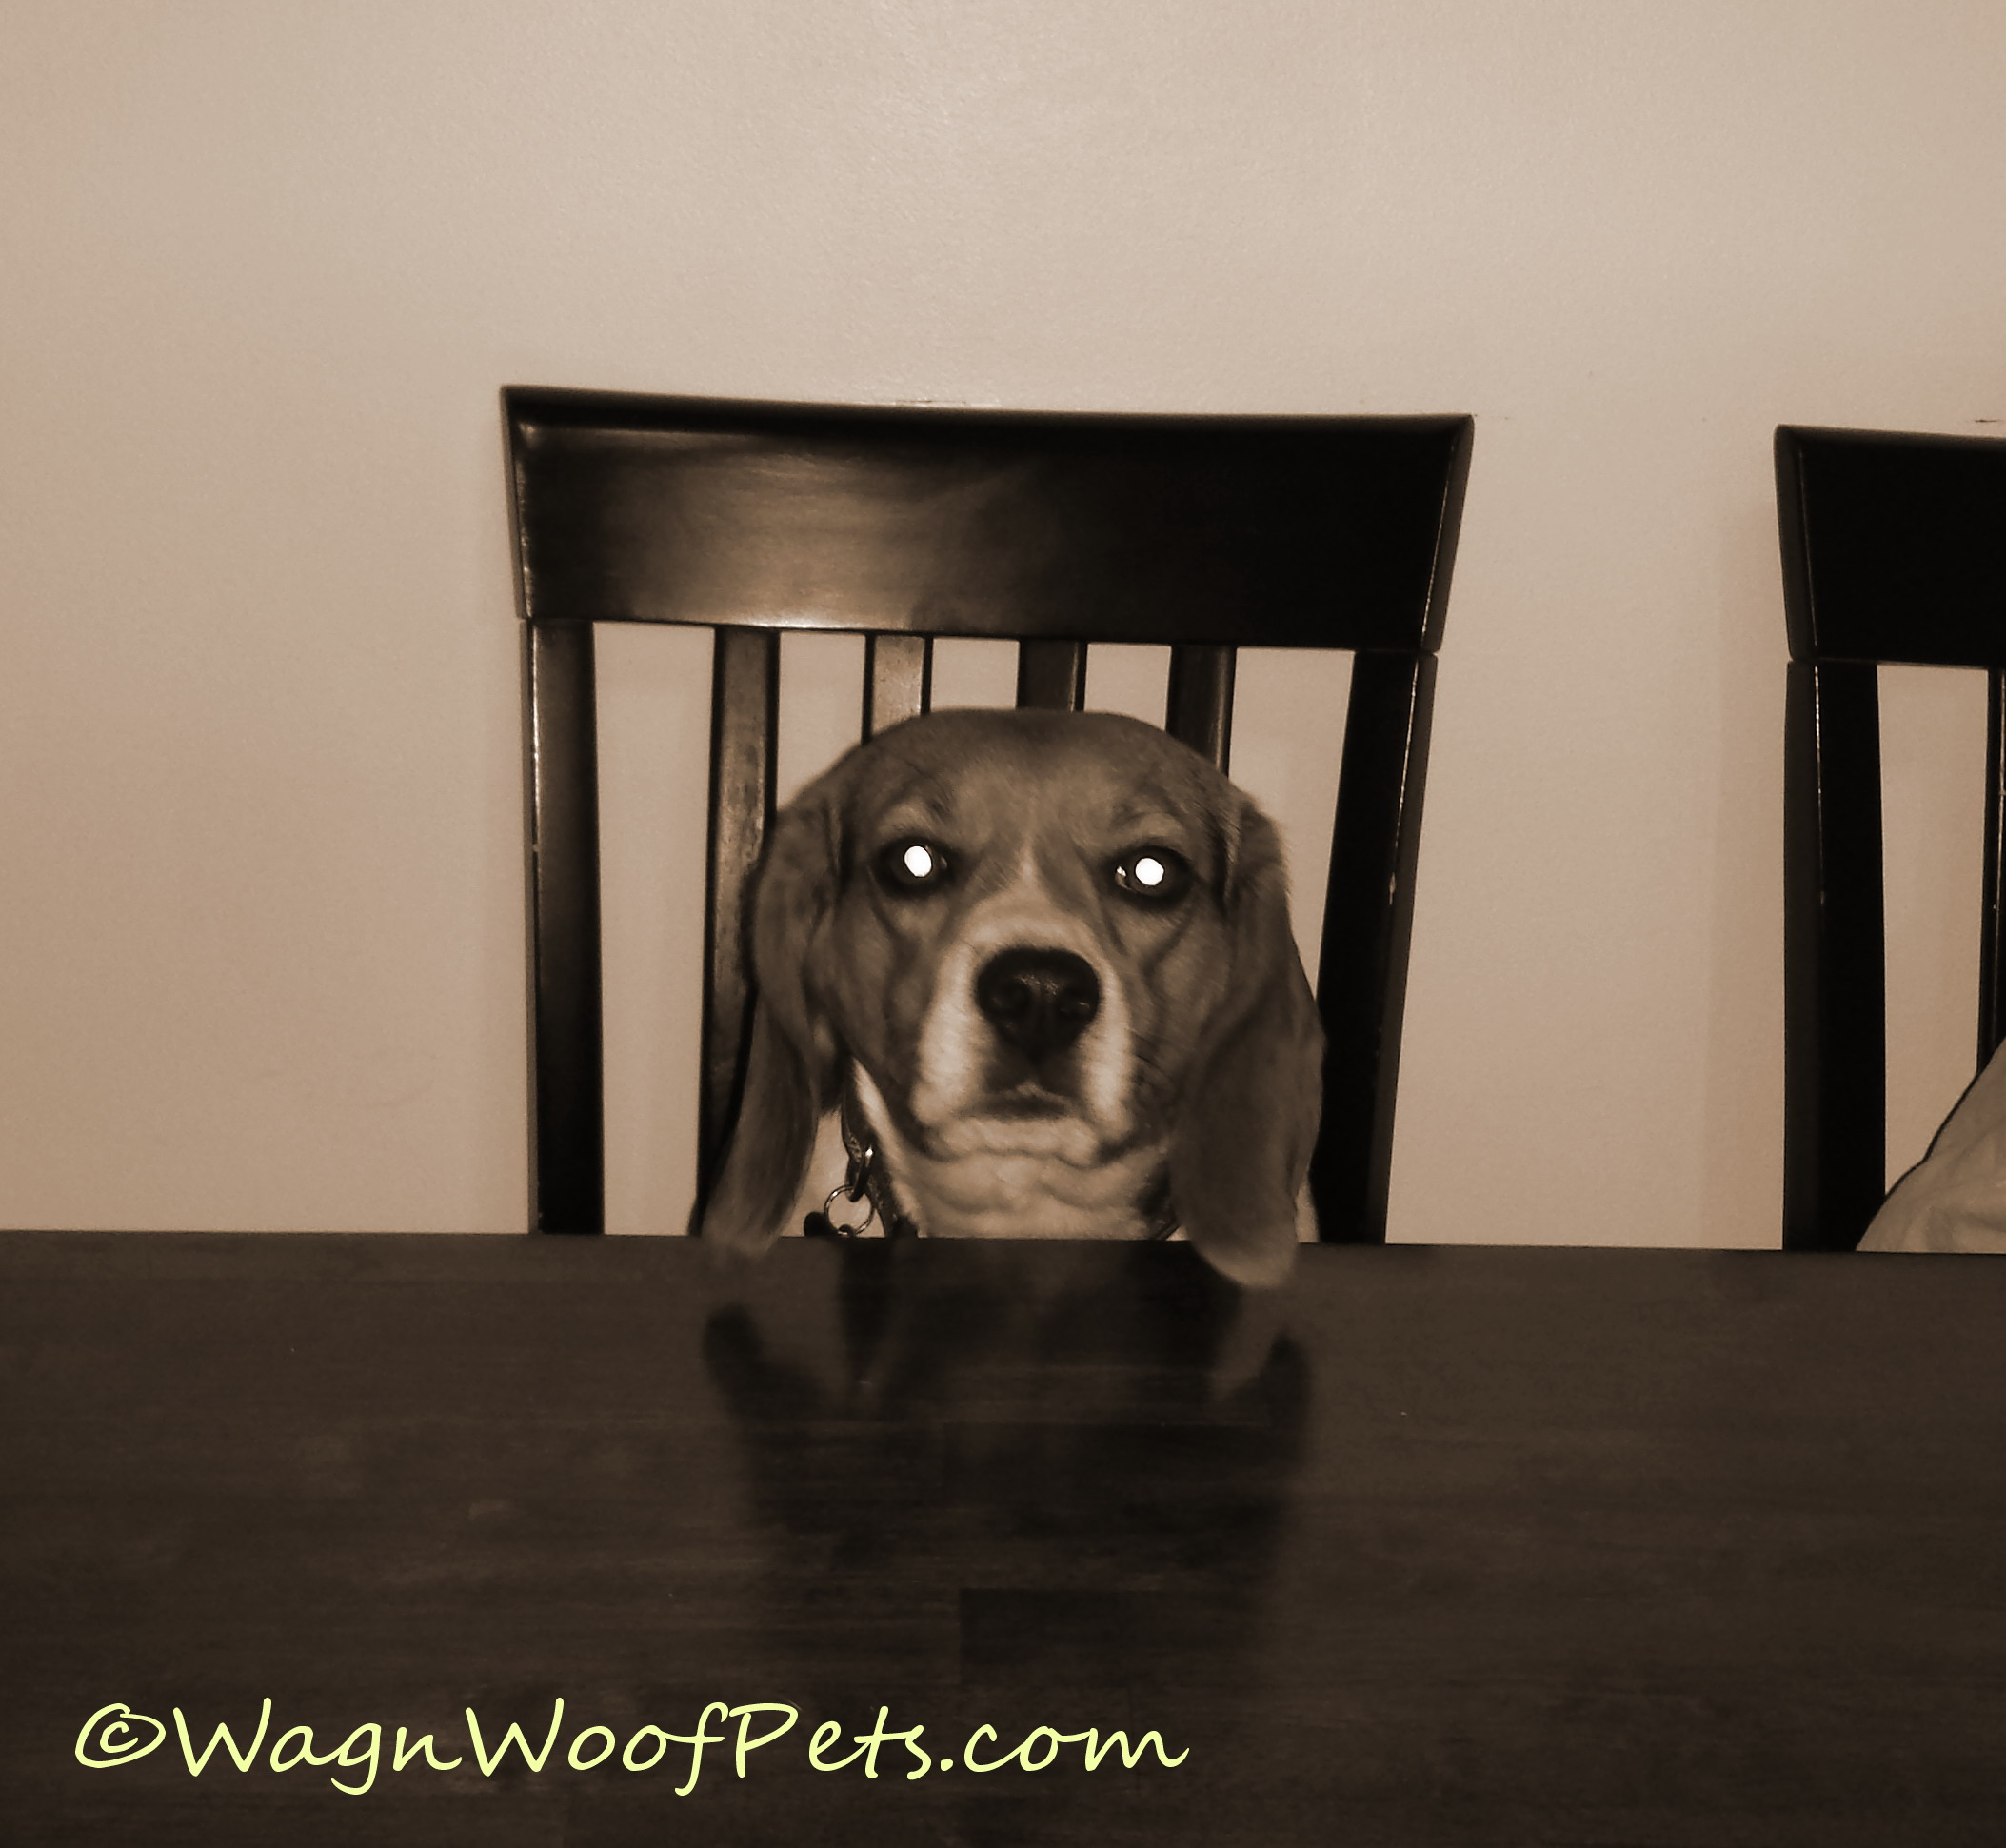 What?  Don't your dogs sit at the table like a person?